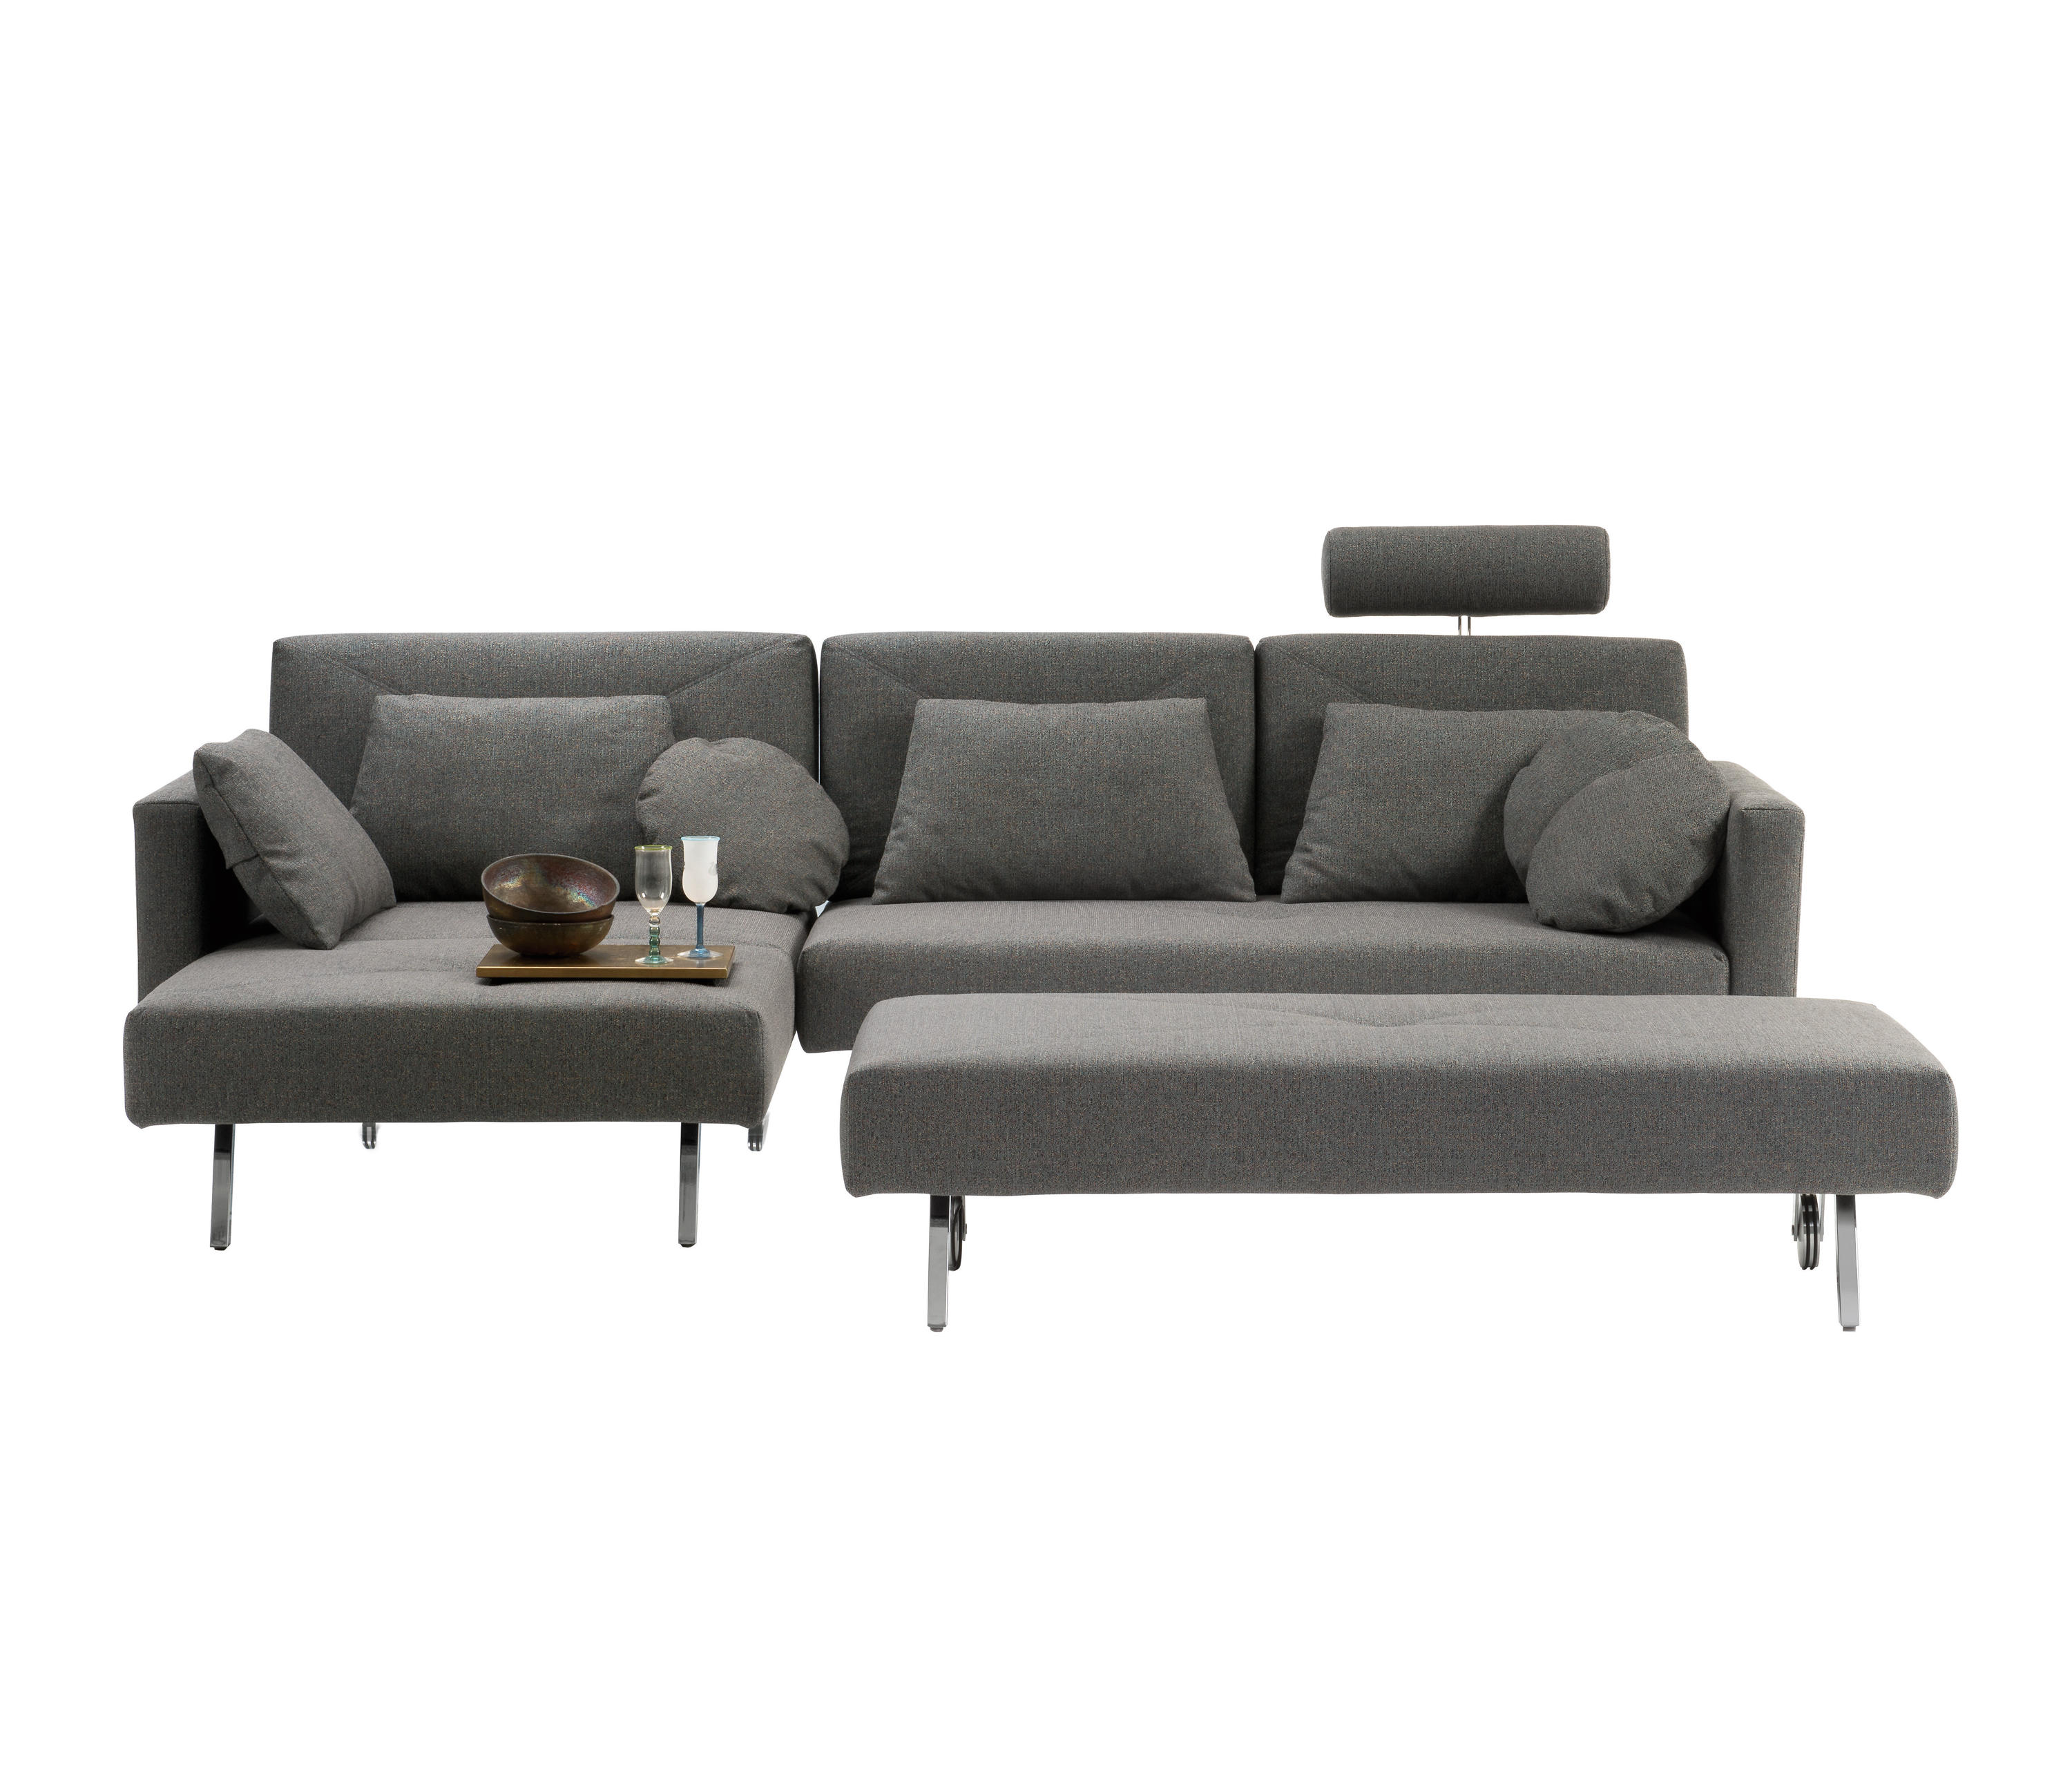 concert sofas von br hl architonic. Black Bedroom Furniture Sets. Home Design Ideas